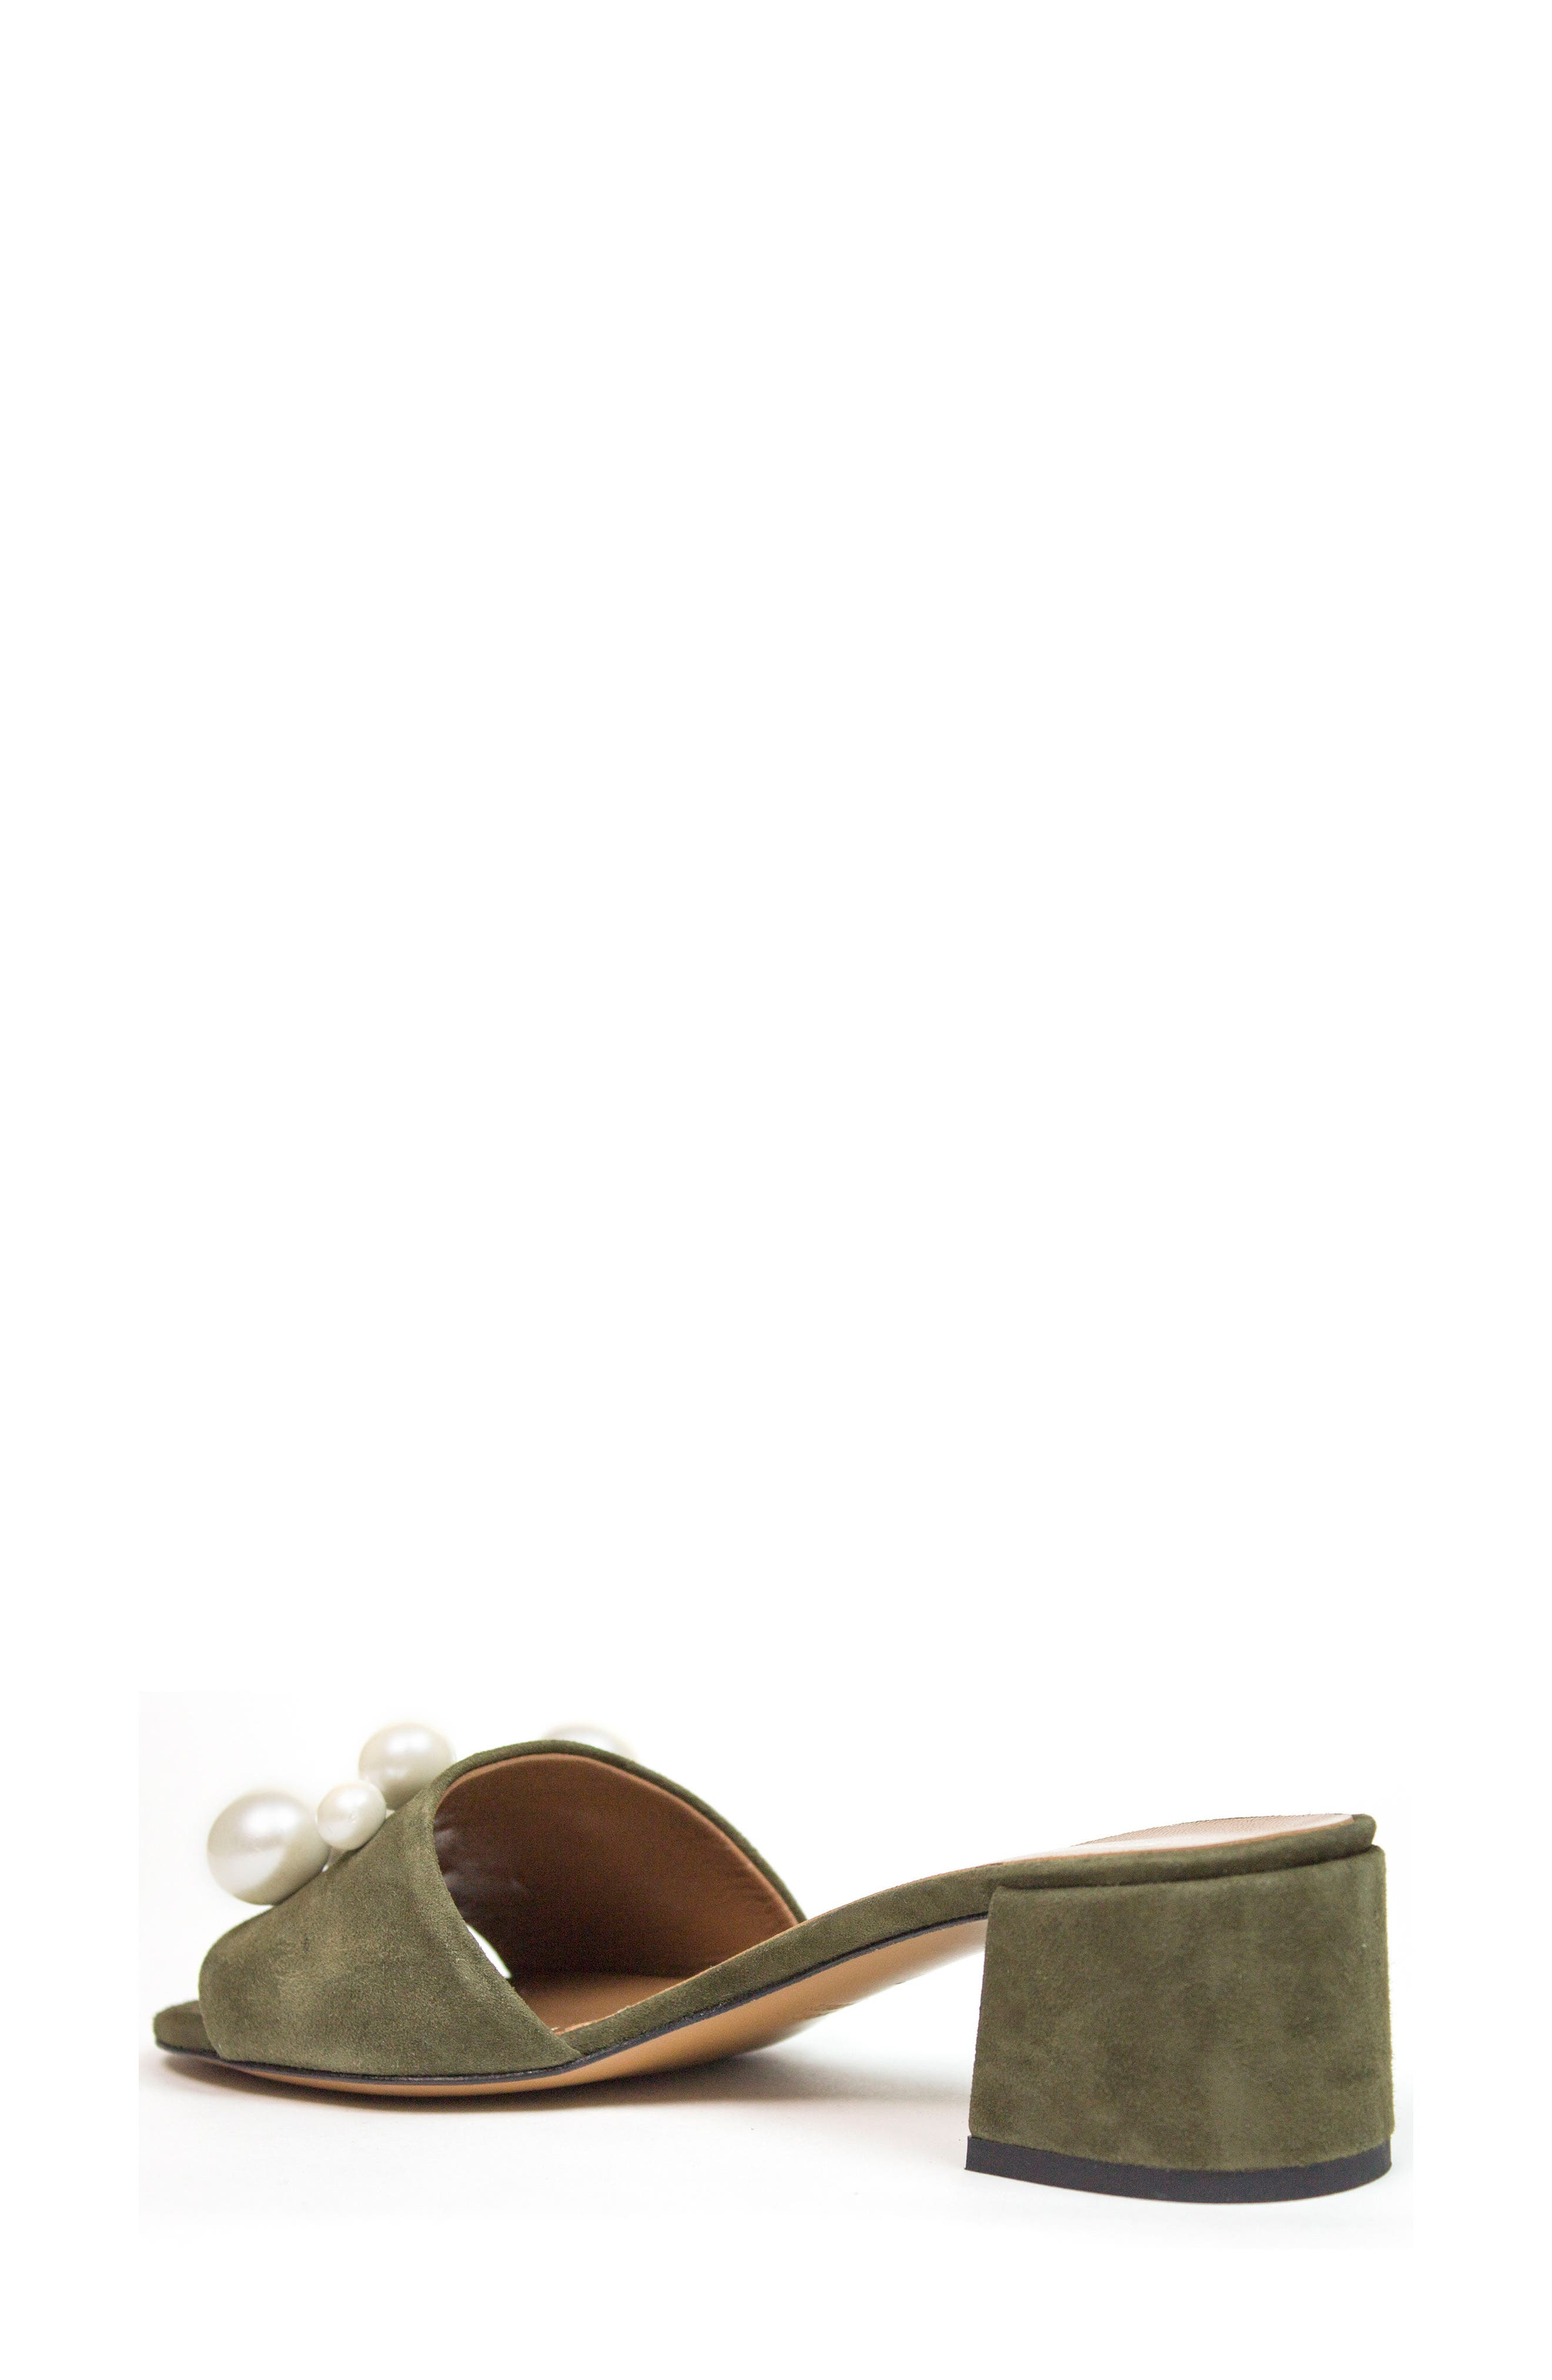 Ariella Beaded Slide Mule,                             Alternate thumbnail 2, color,                             Olive Suede